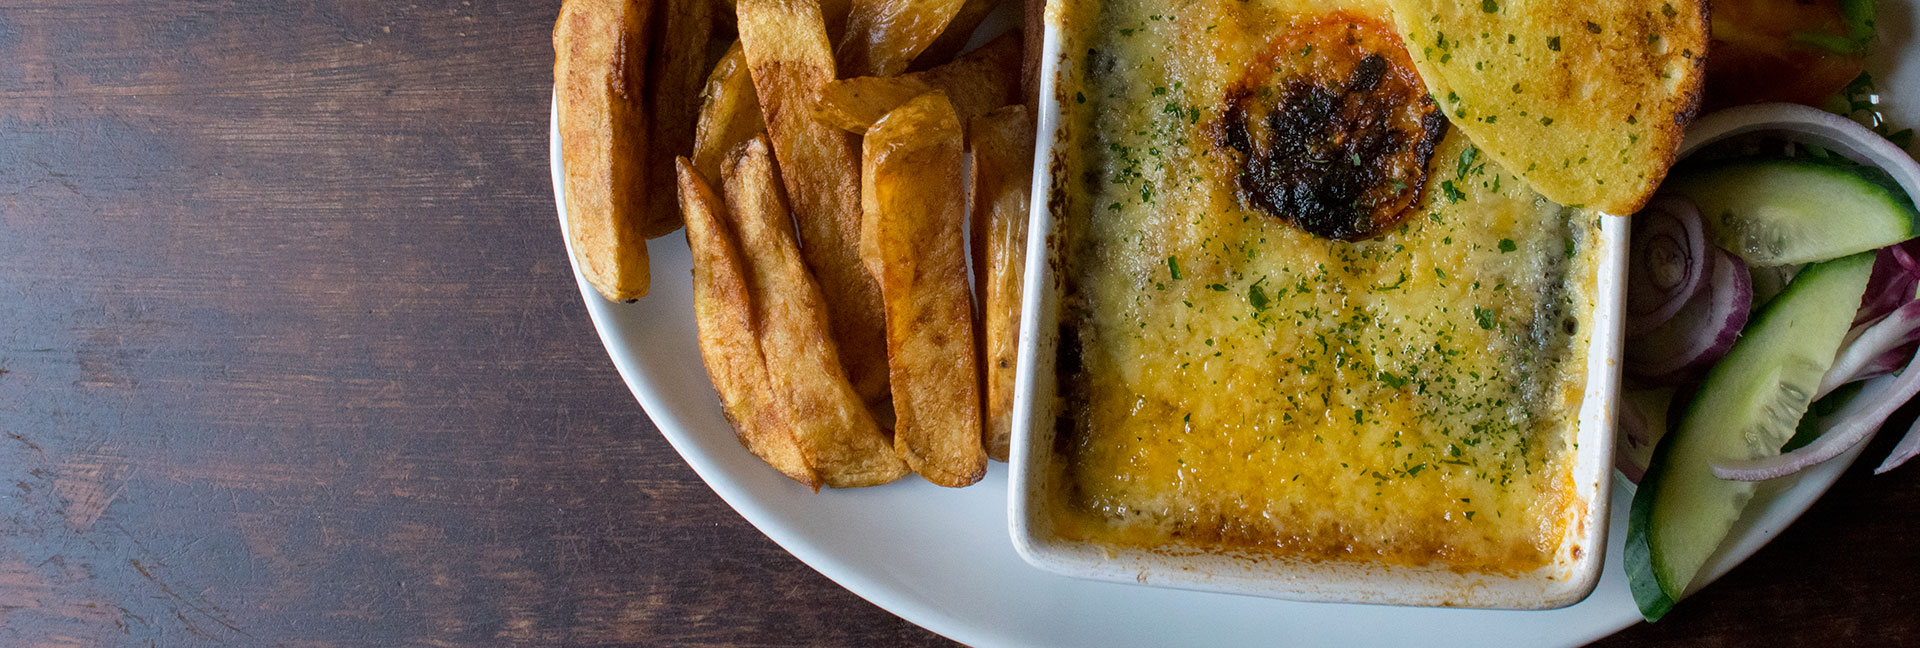 Homemade Lasagne | The Open Hearth Restaurant